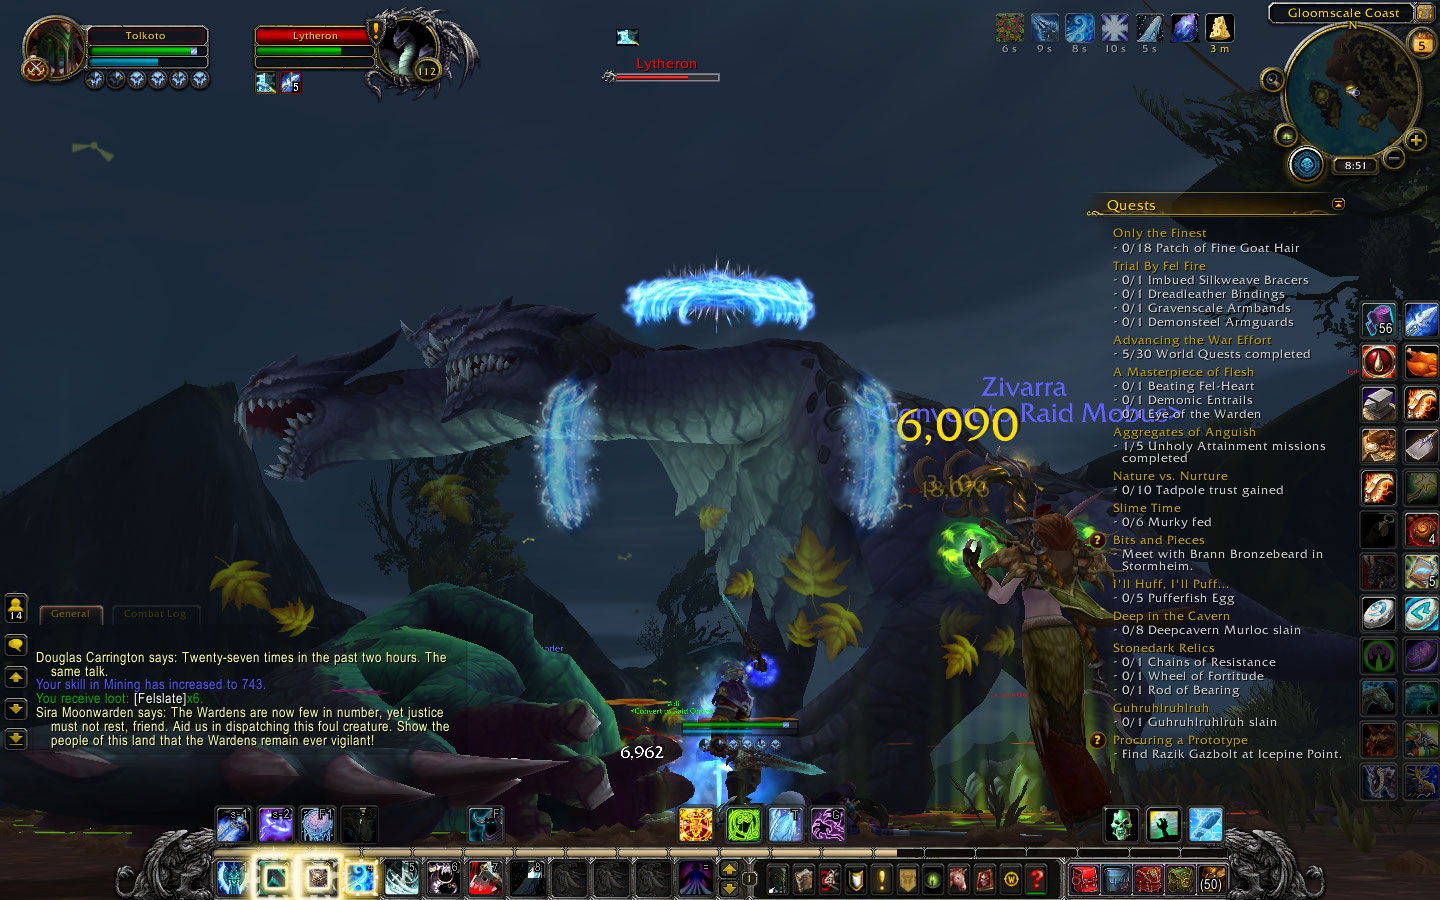 Fighting a dragon as part of a world quest.